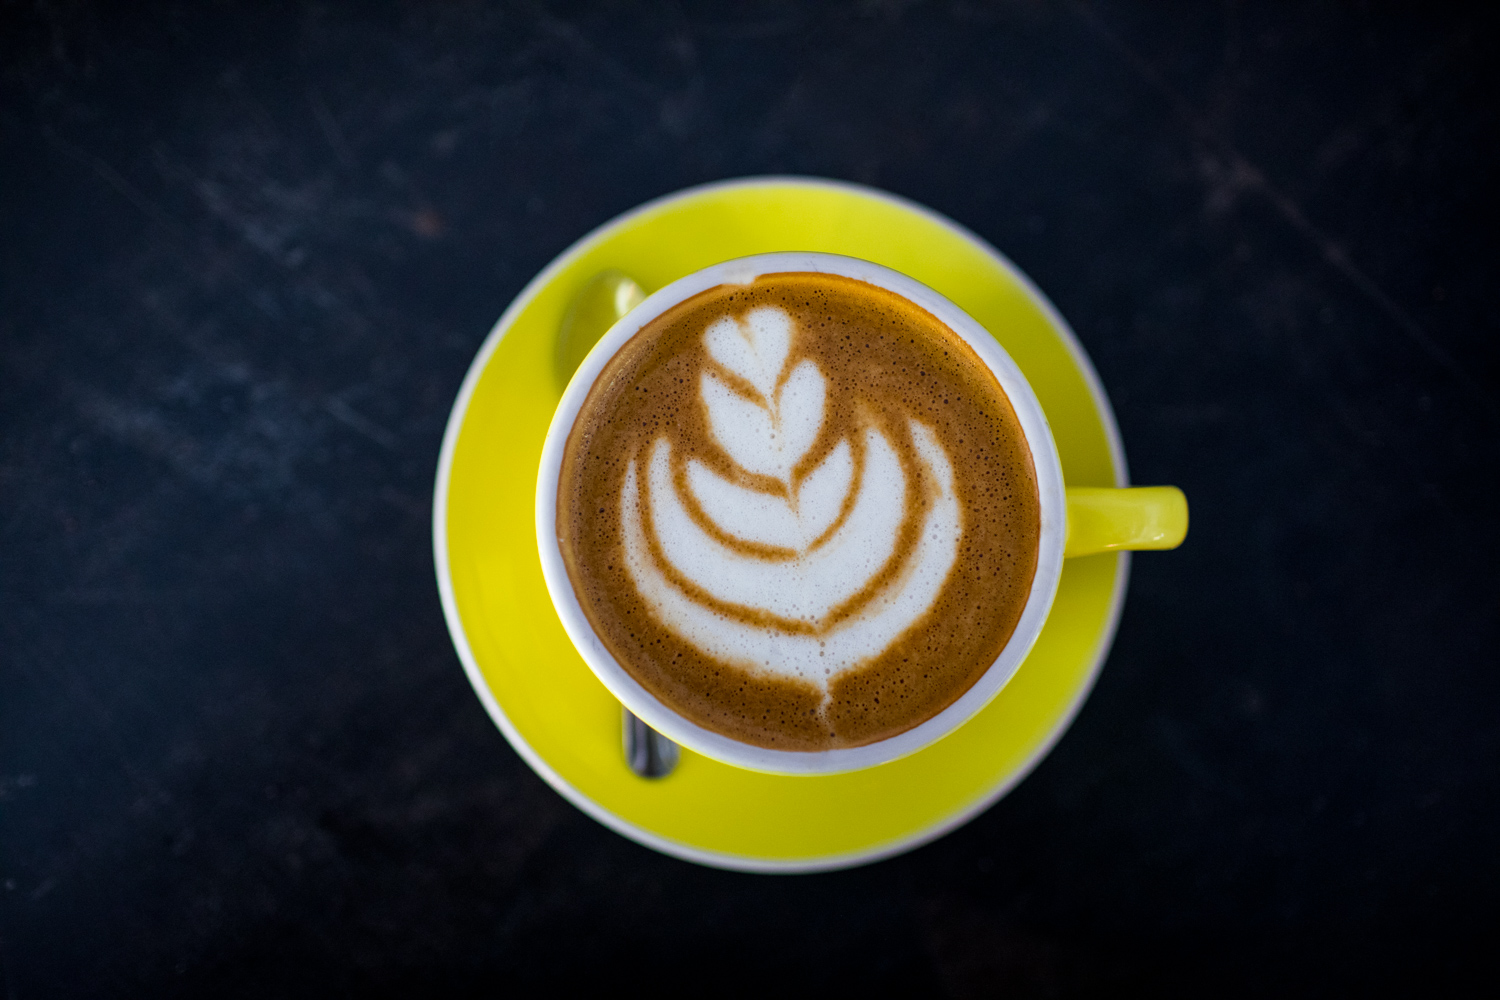 Oat milk cappuccino at Banjo Coffee. See this image  on Instagram .